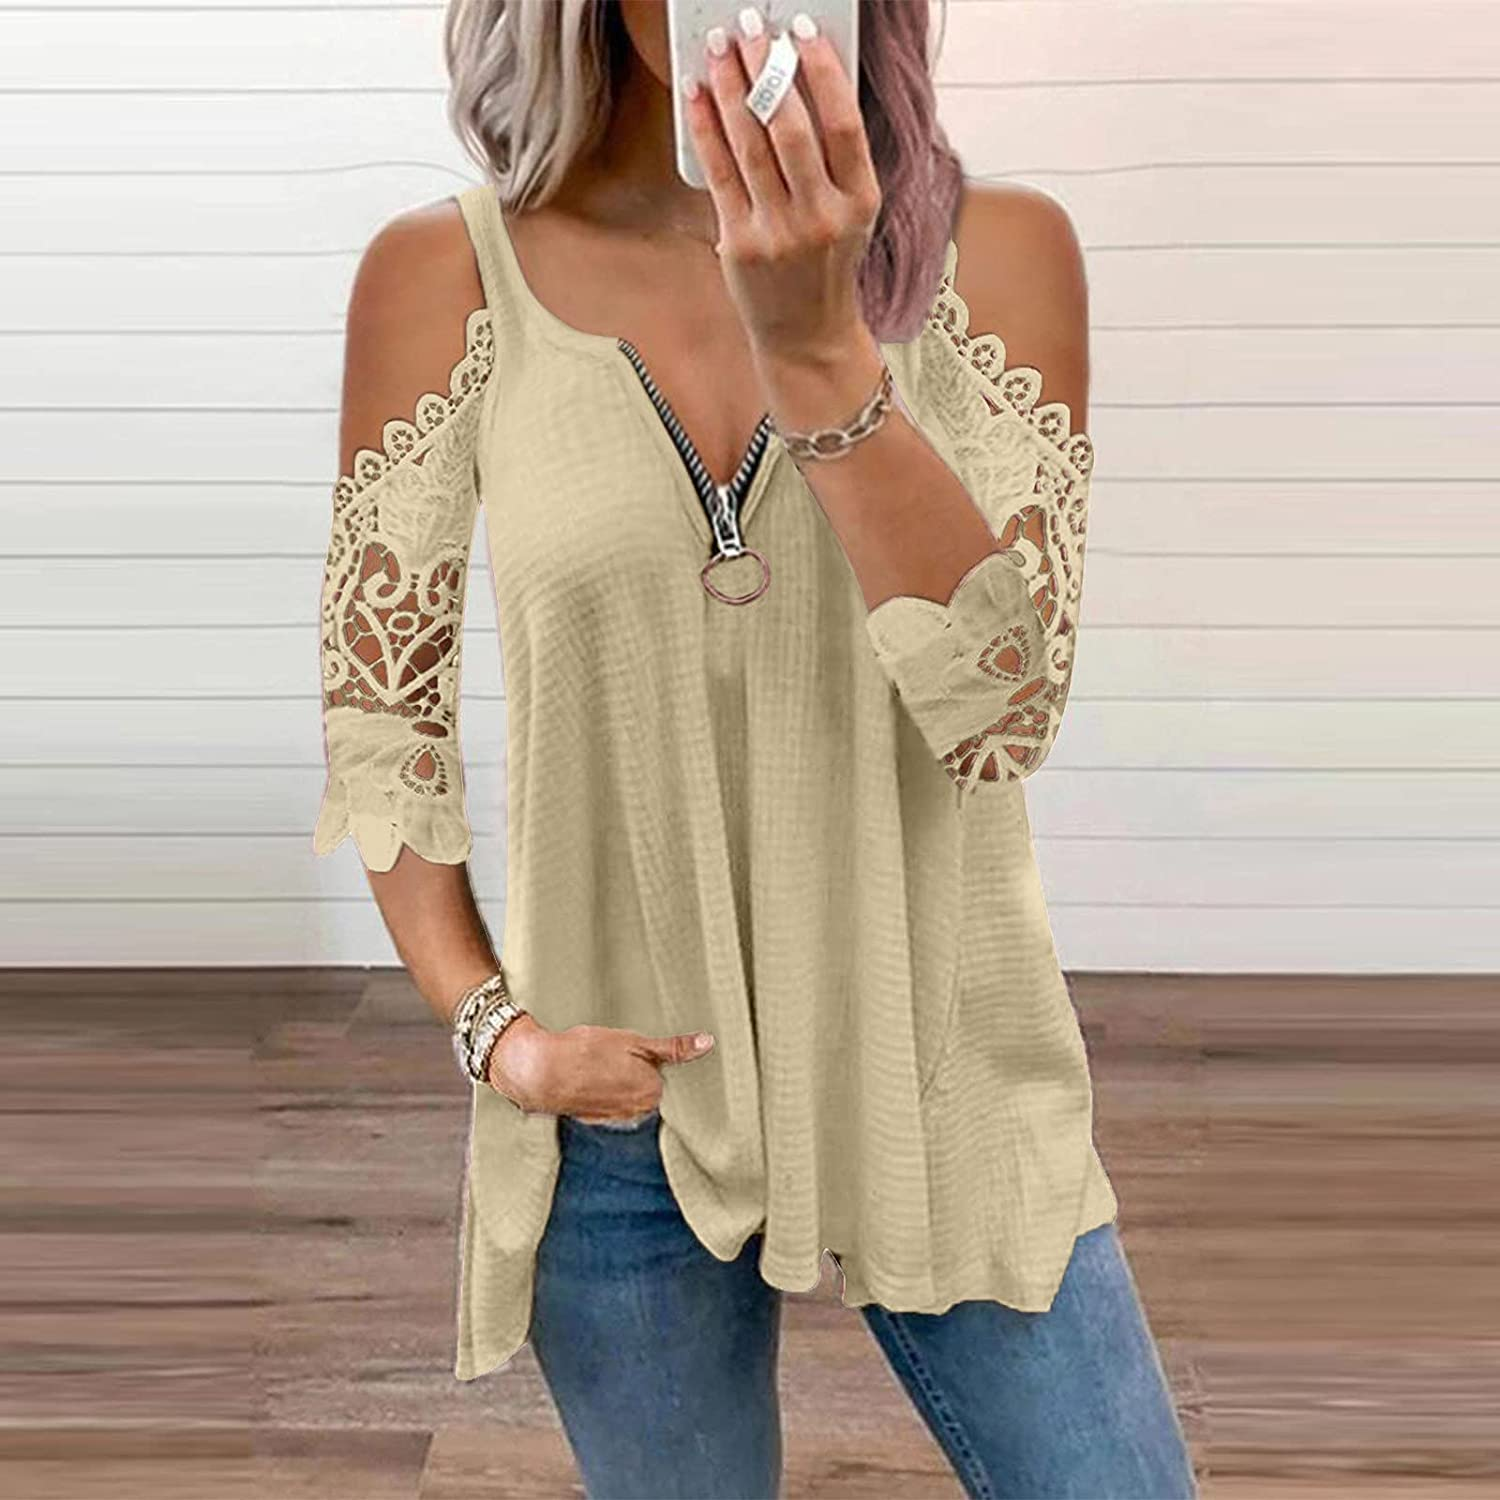 Women Sexy Lace Tshirts Summer V Neck Tunics Tops Casual Fashion Tees Cold Shoulder Zipper Blouses